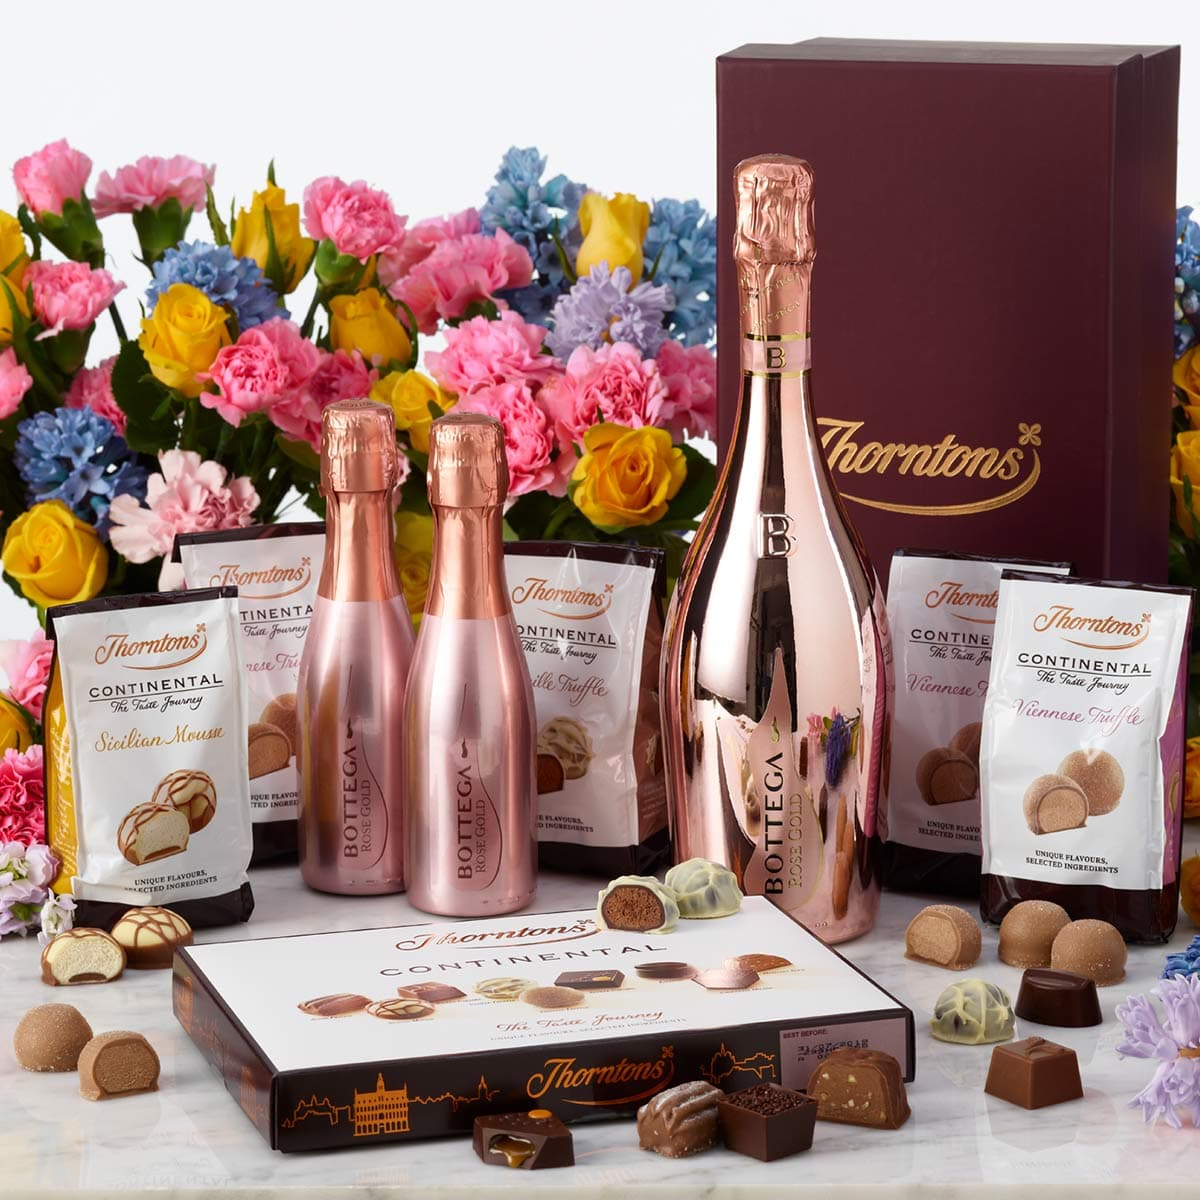 A large and two small pink prosecco bottles surrounded by flowers, bags of chocolates and a box of chocolates.